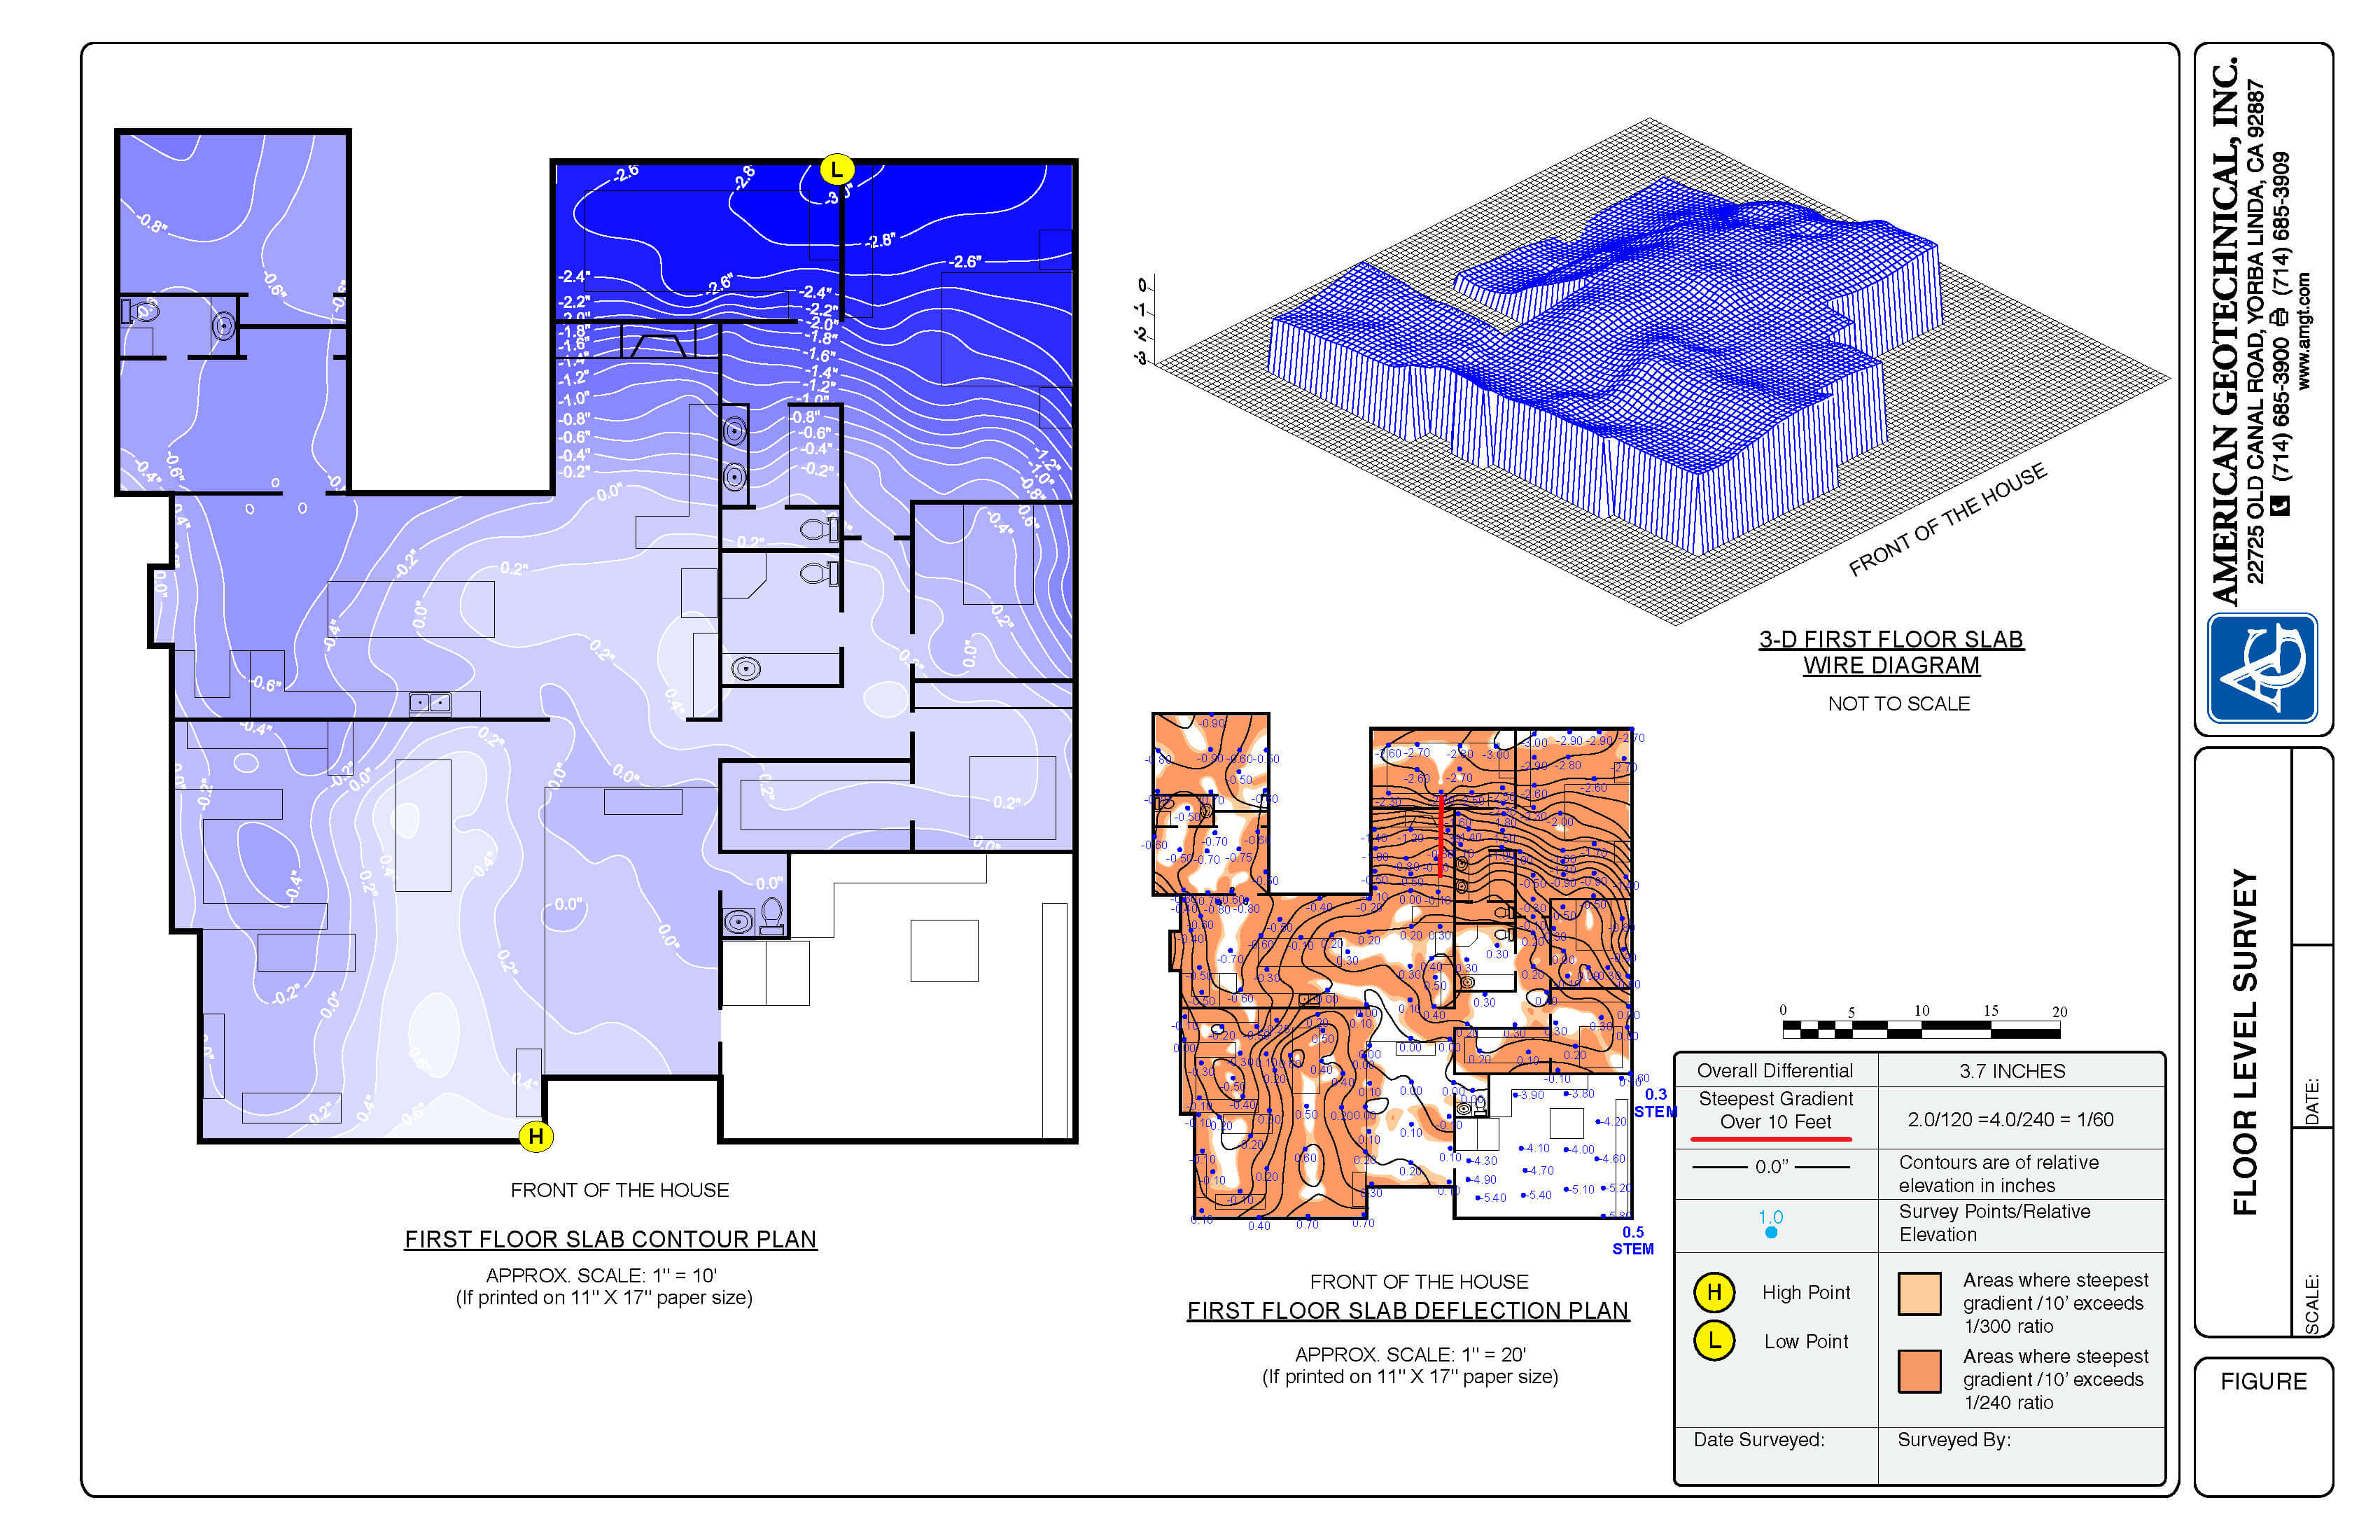 Floor level survey - mapped in Surfer 2D & 3D graphing, plotting, and analysis software